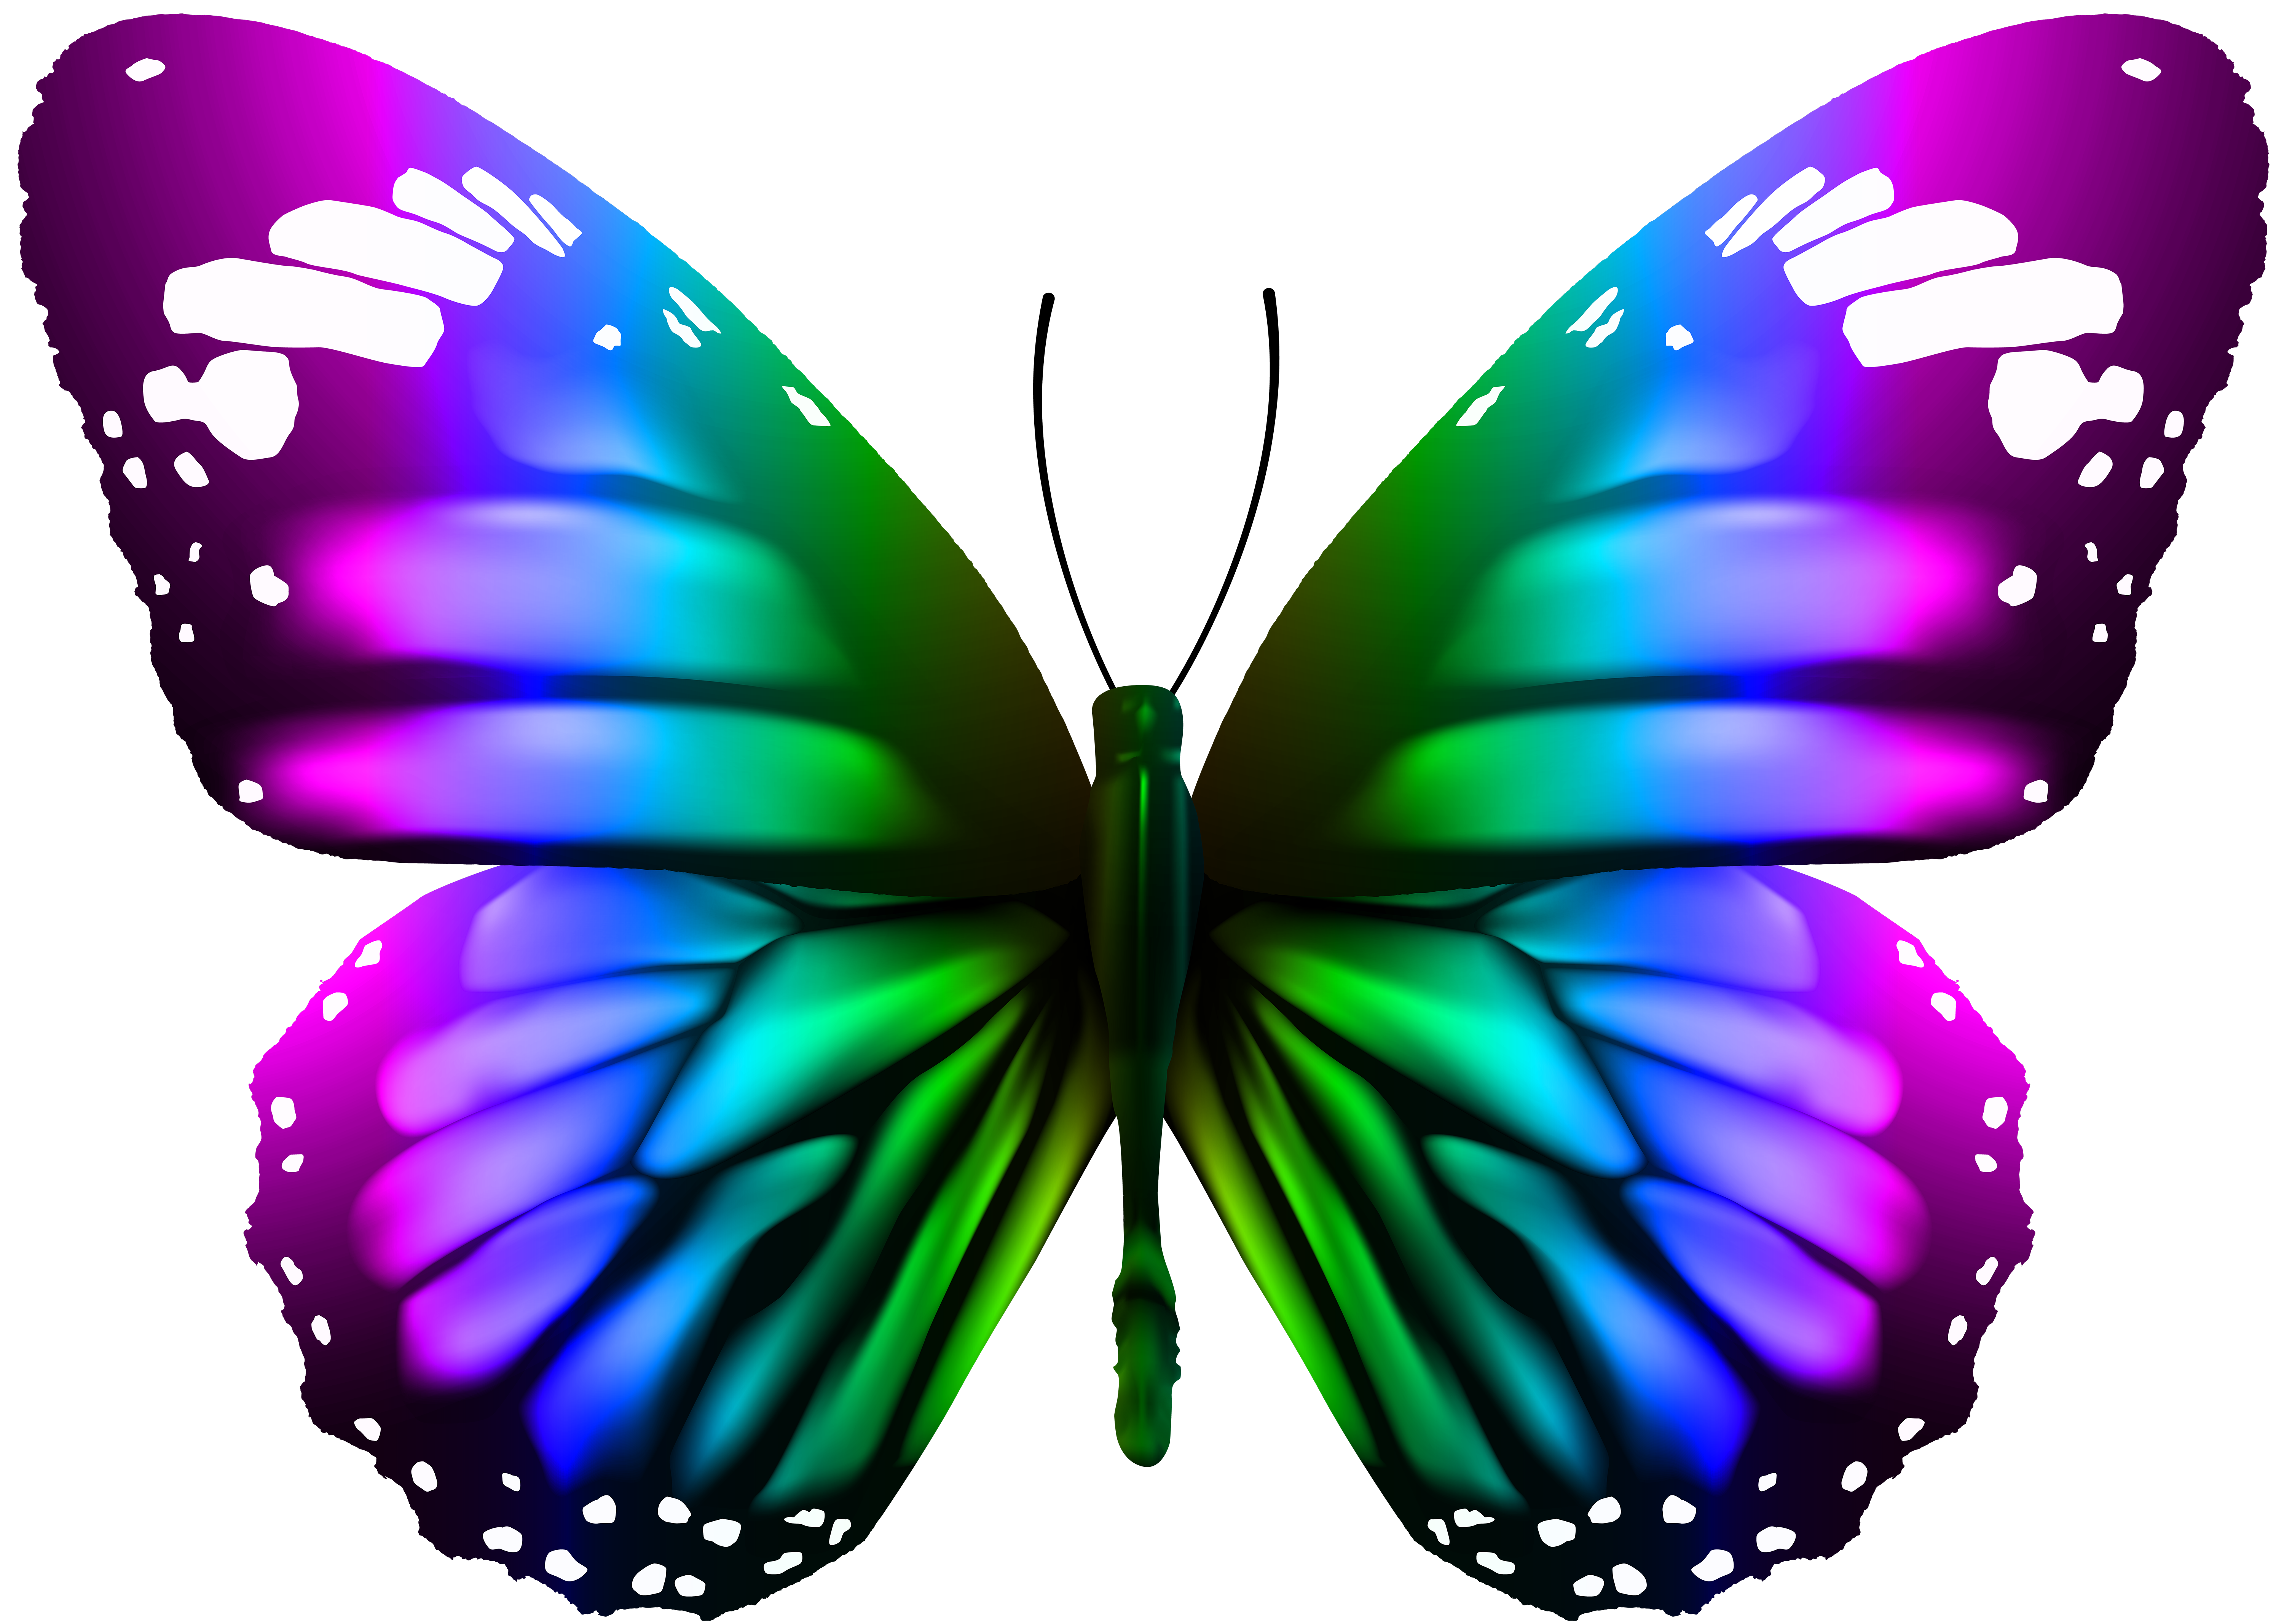 Butterfly transparent png image. Moth clipart clip art